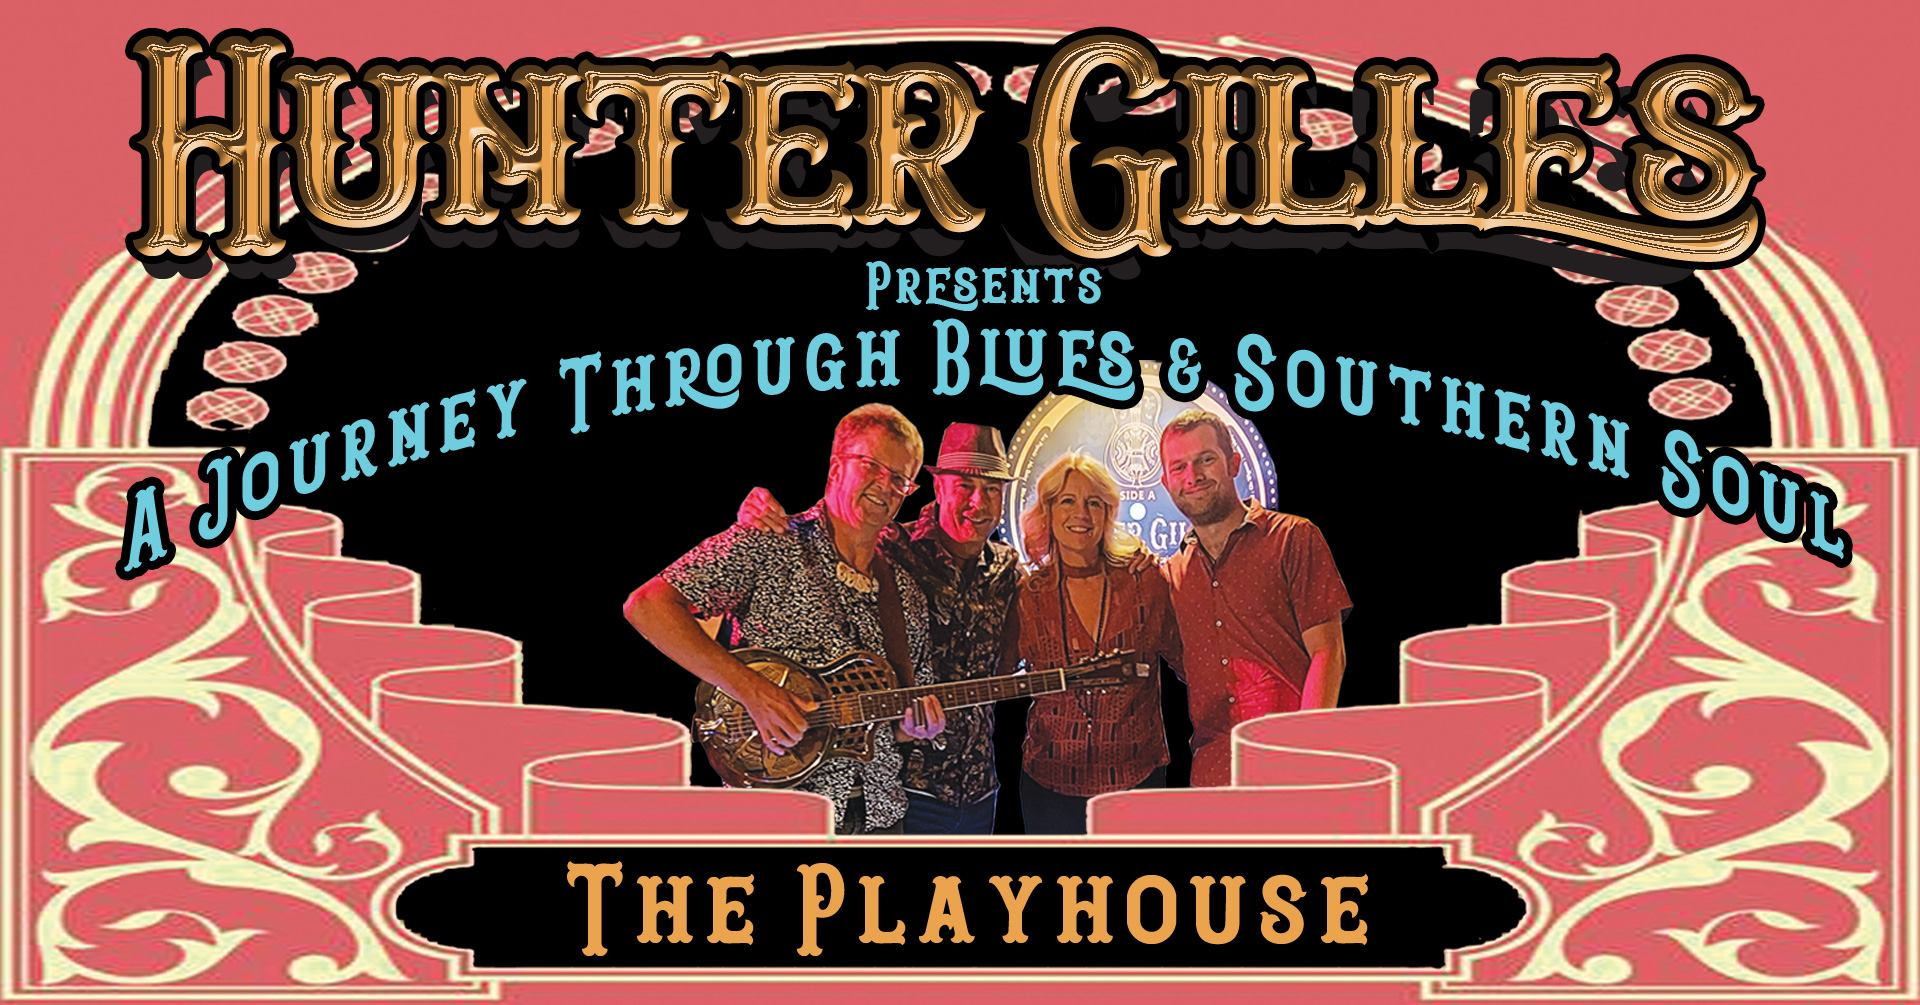 Blues at the Playhouse